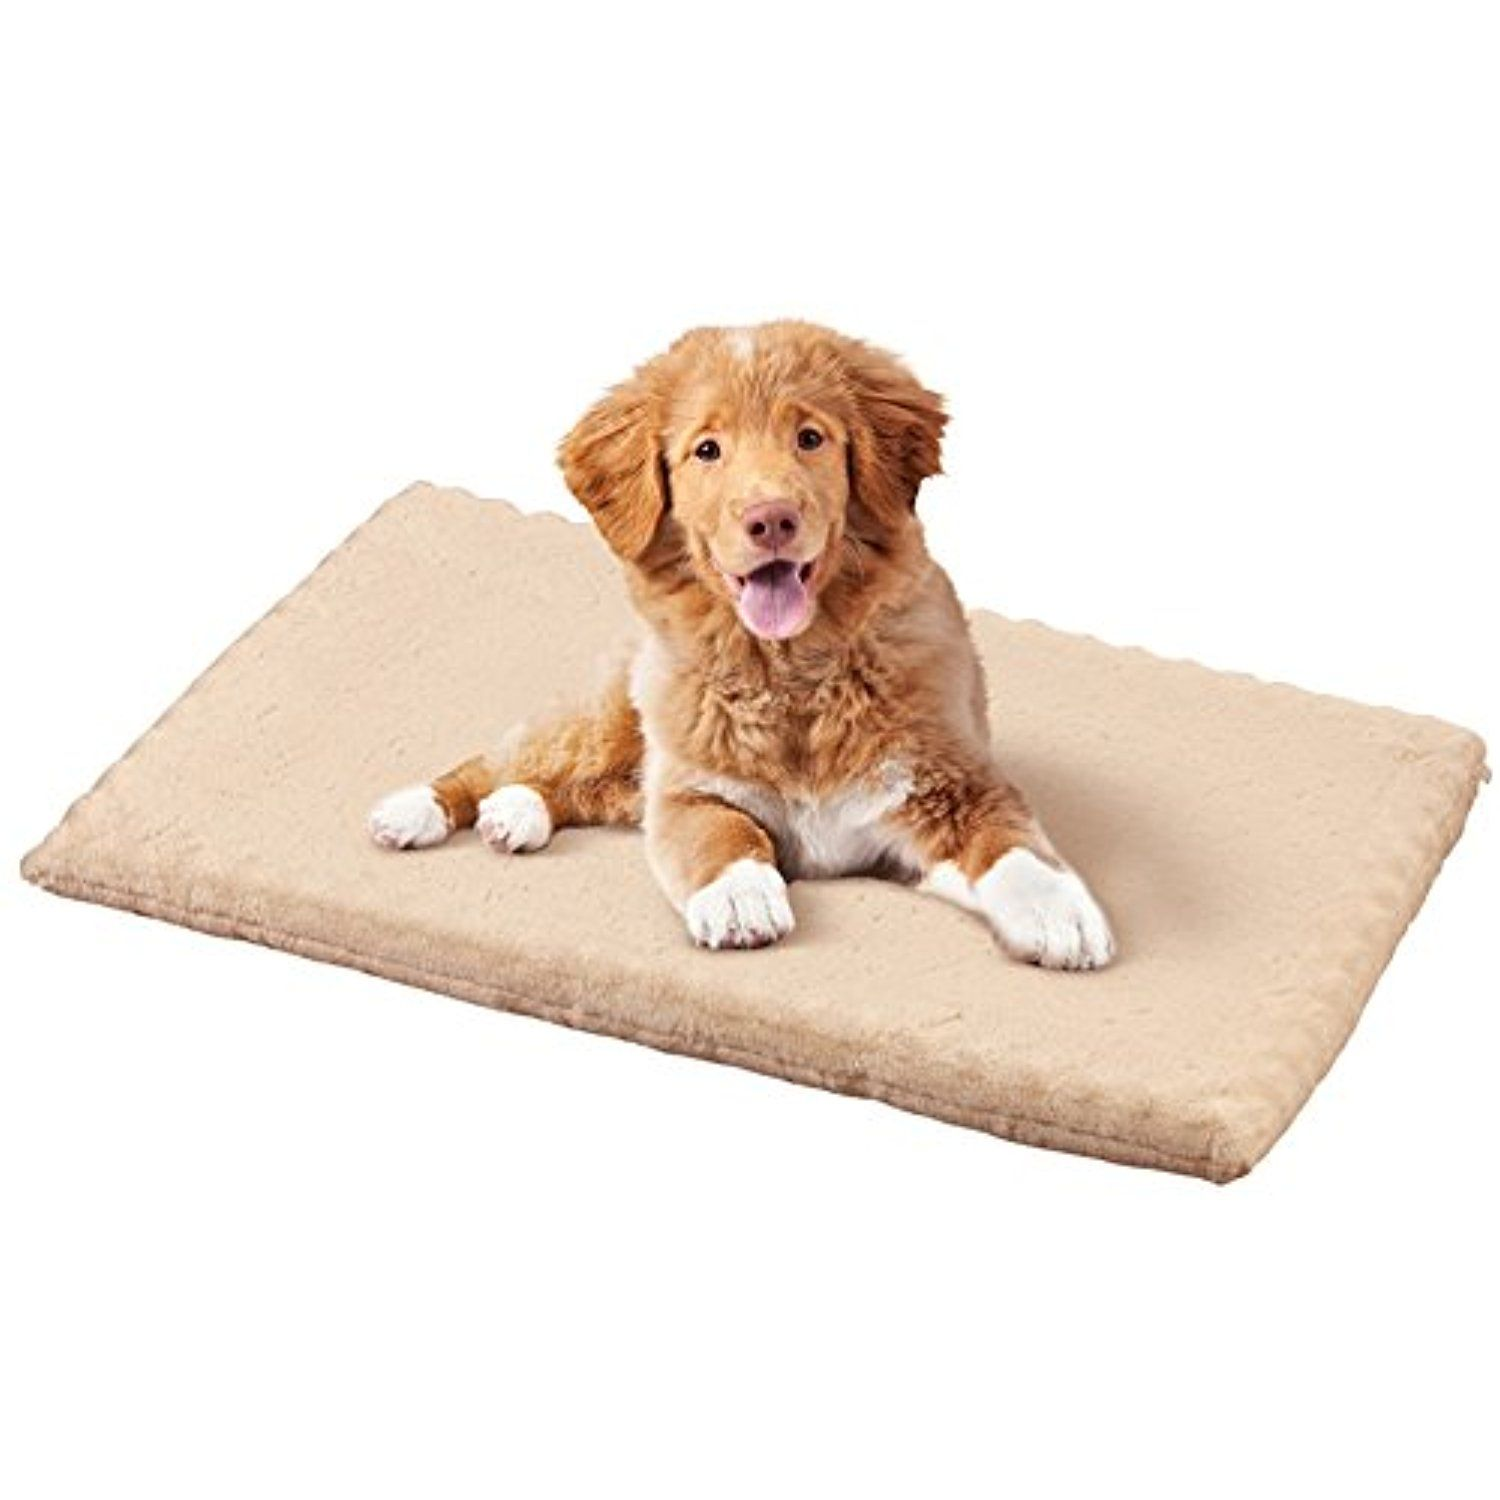 Orthopedic Pet Mat with Removable Cover and Slip Resistant Backing Use Alone or in